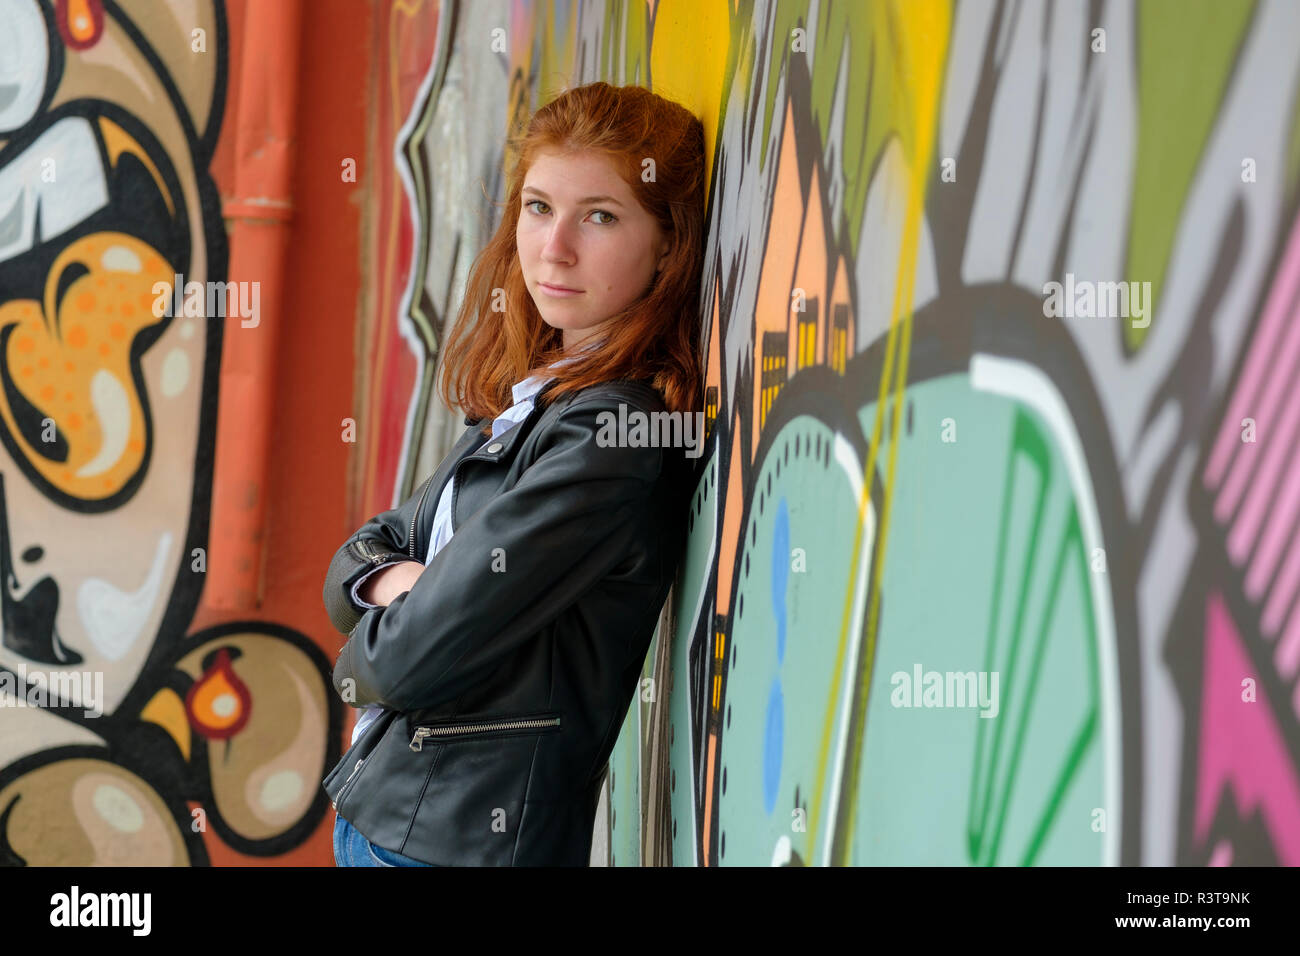 Italy, Finale Ligure, portrait of redheaded teenage girl leaning against mural - Stock Image